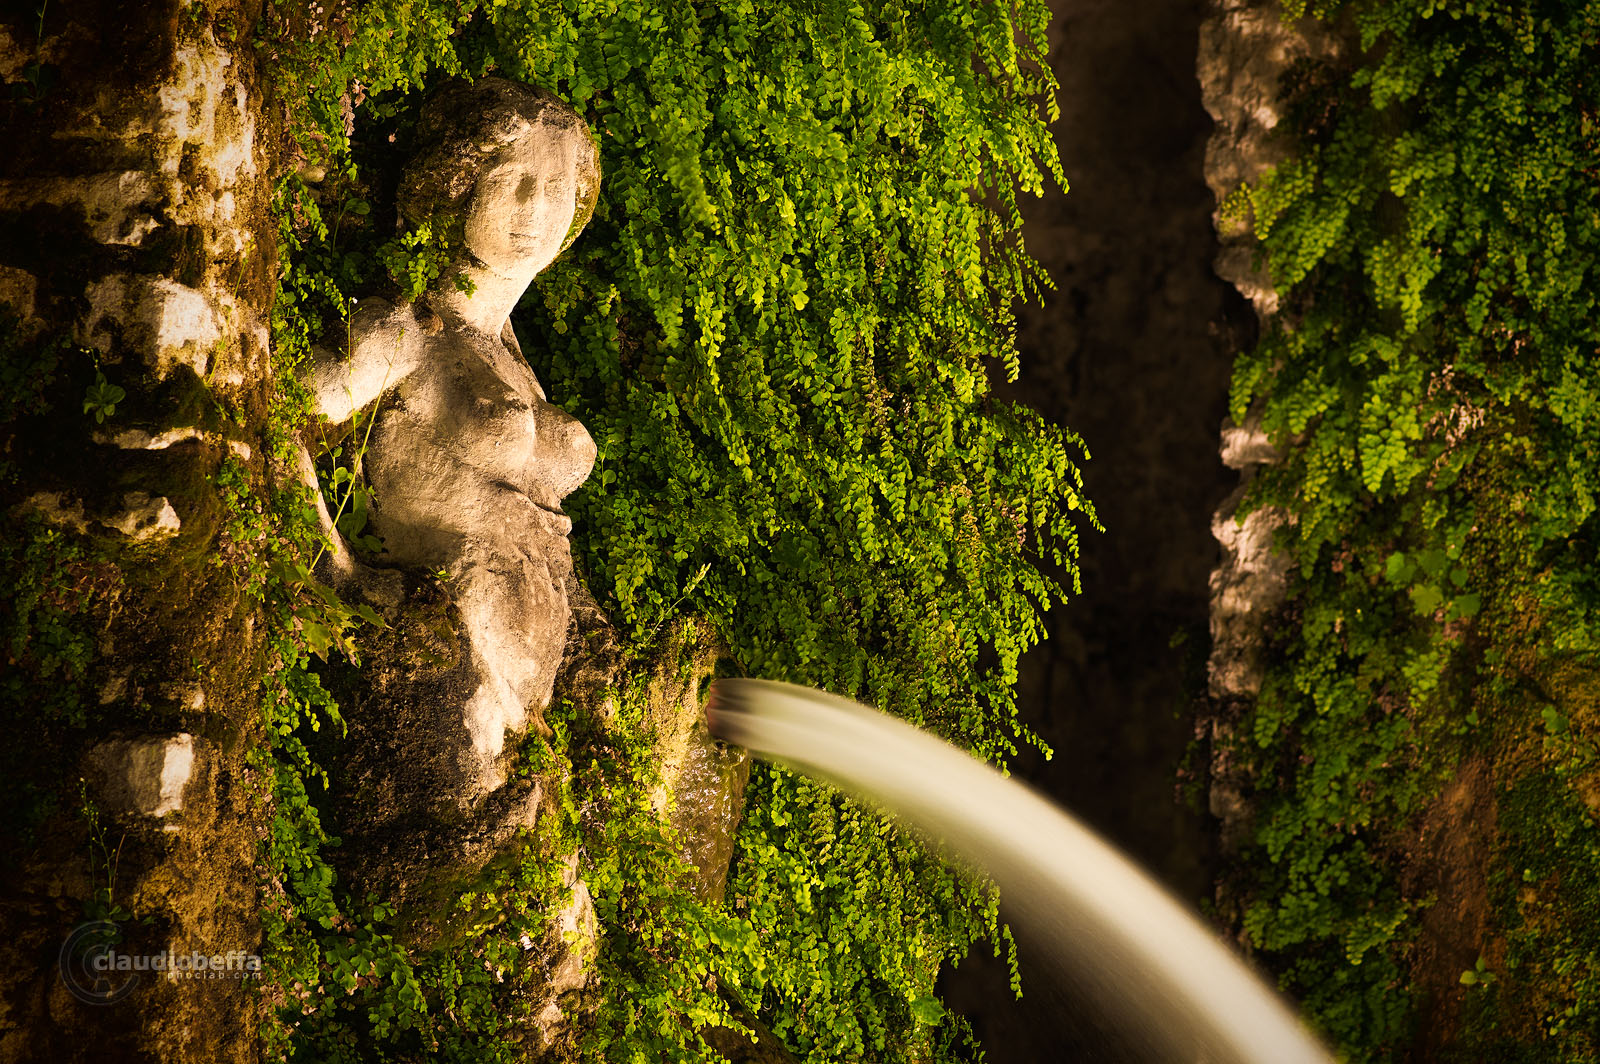 Water nymph, Villa d'Este, Garden, Fountain, Water, Tivoli, Italy